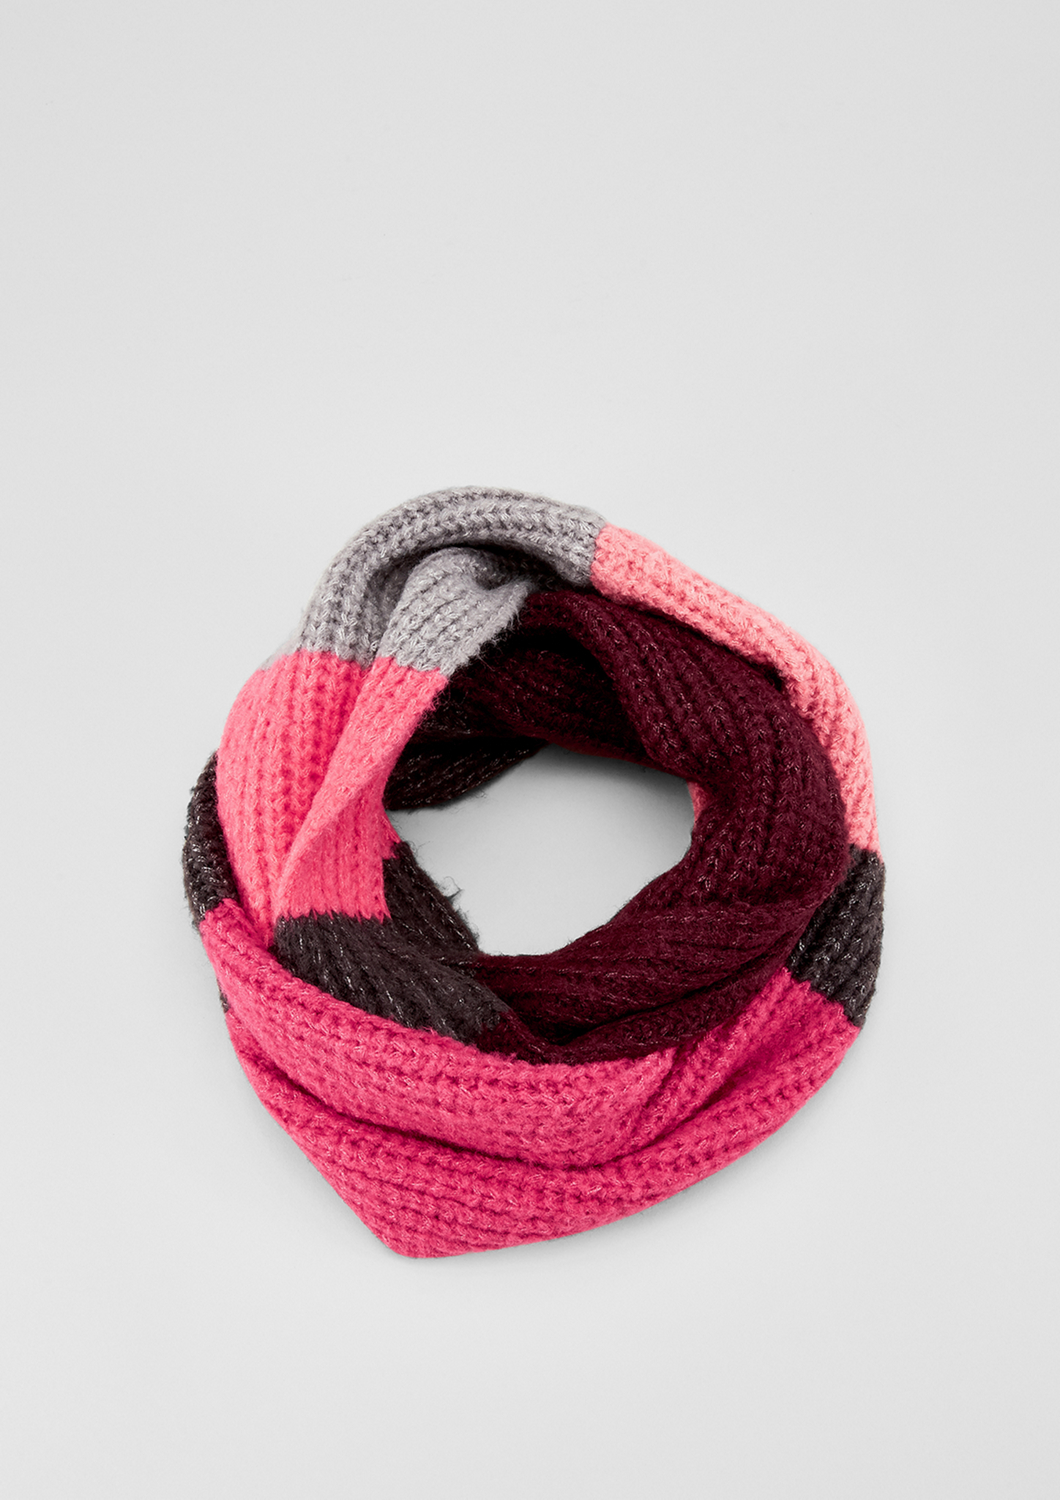 Strick-Loop | Accessoires > Schals & Tücher > Loops | Pink | 75% polyacryl -  22% polyester -  3% elasthan | s.Oliver